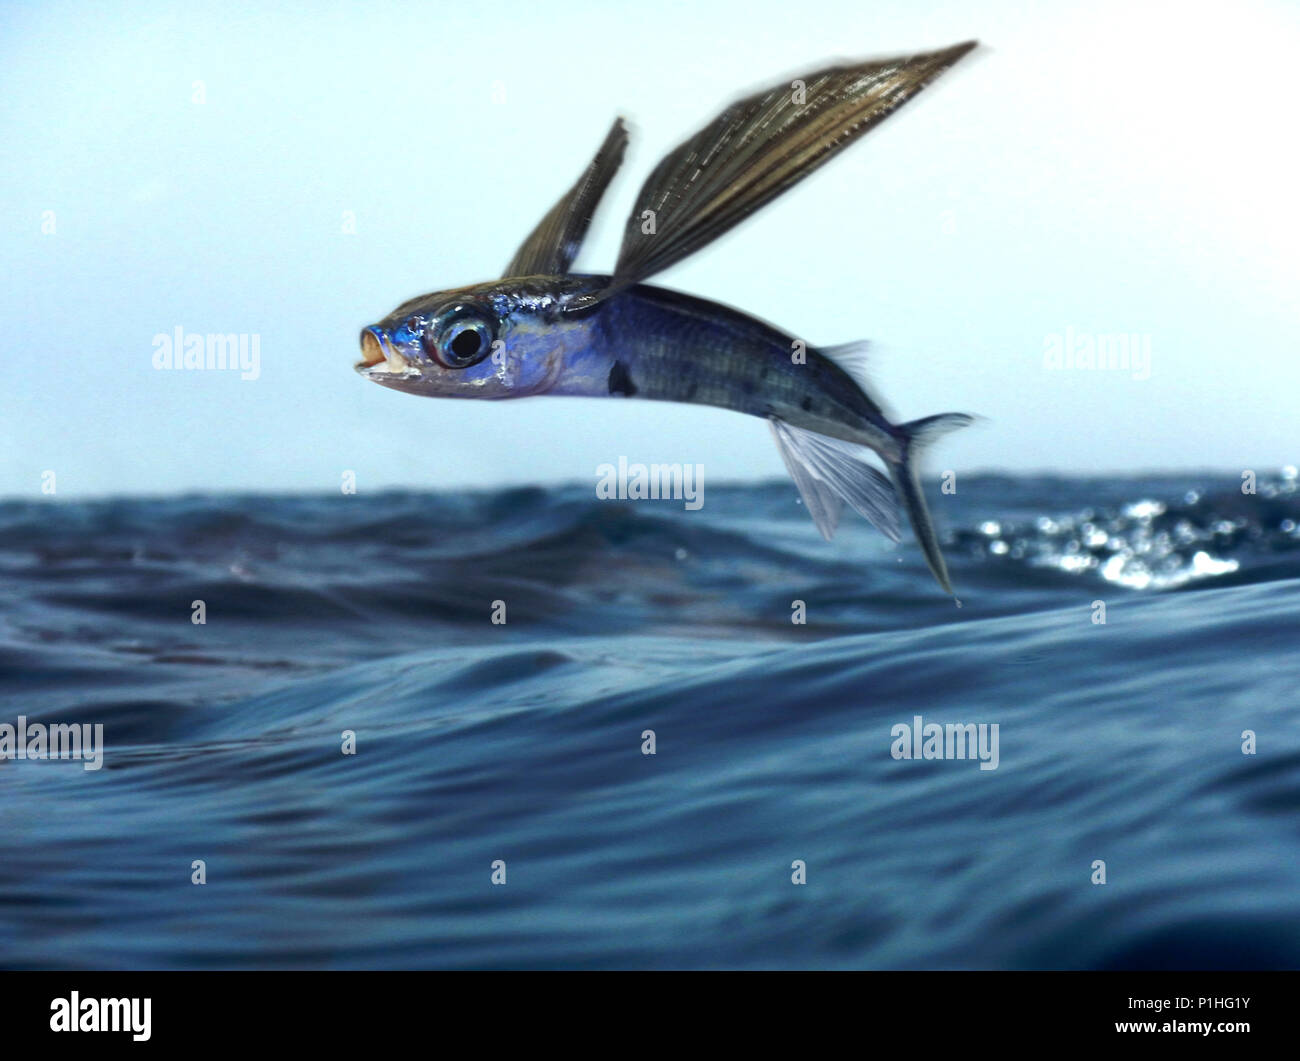 Oceanic two-wing flyingfish, Exocoetus obtusirostris, flying. Is an endemic species to the Atlantic Ocean and showed no significant differences from Stock Photo